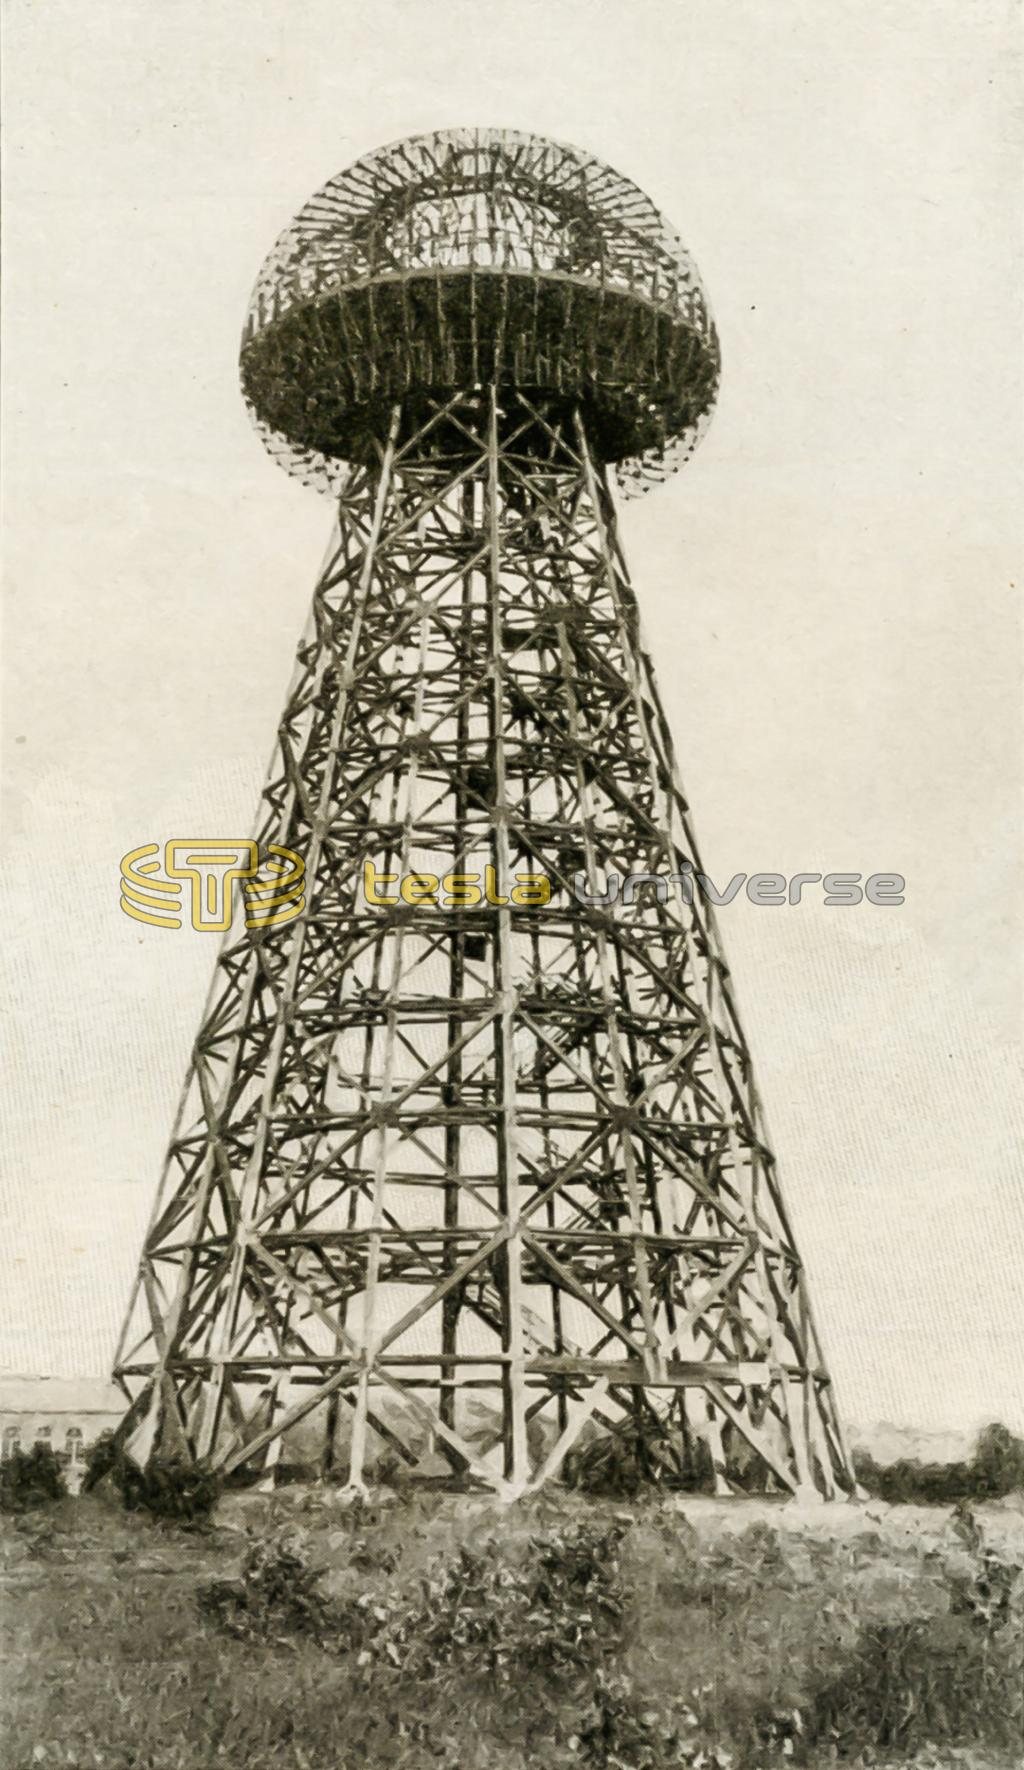 Wardenclyffe tower - Nikola Tesla's dream system of worldwide wireless power